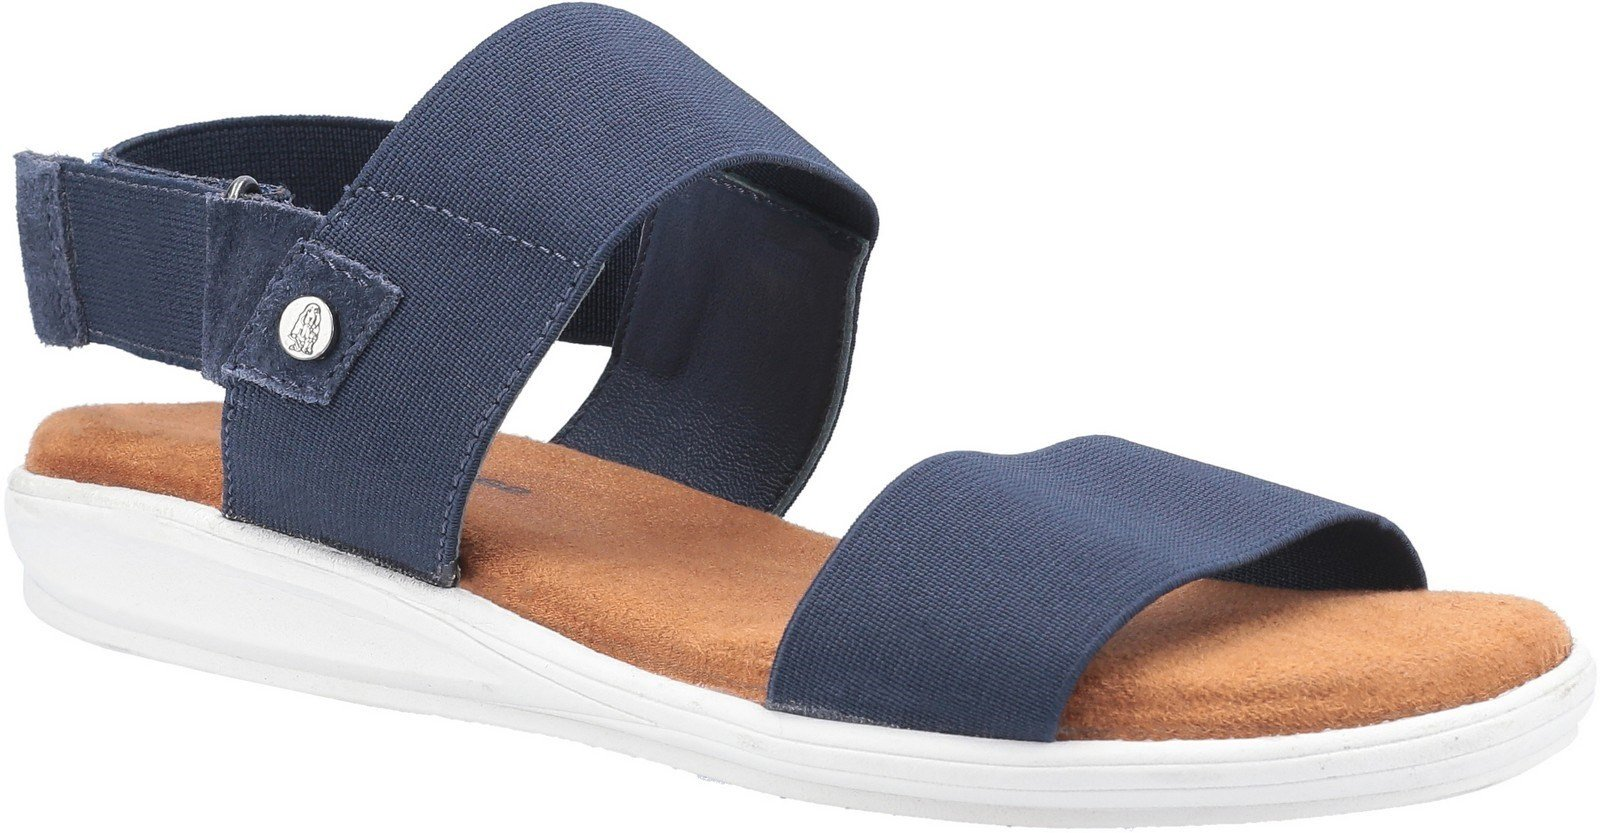 Hush Puppies Women's Ashley Touch Fastening Strap Sandal Various Colours 30218 - Navy 3